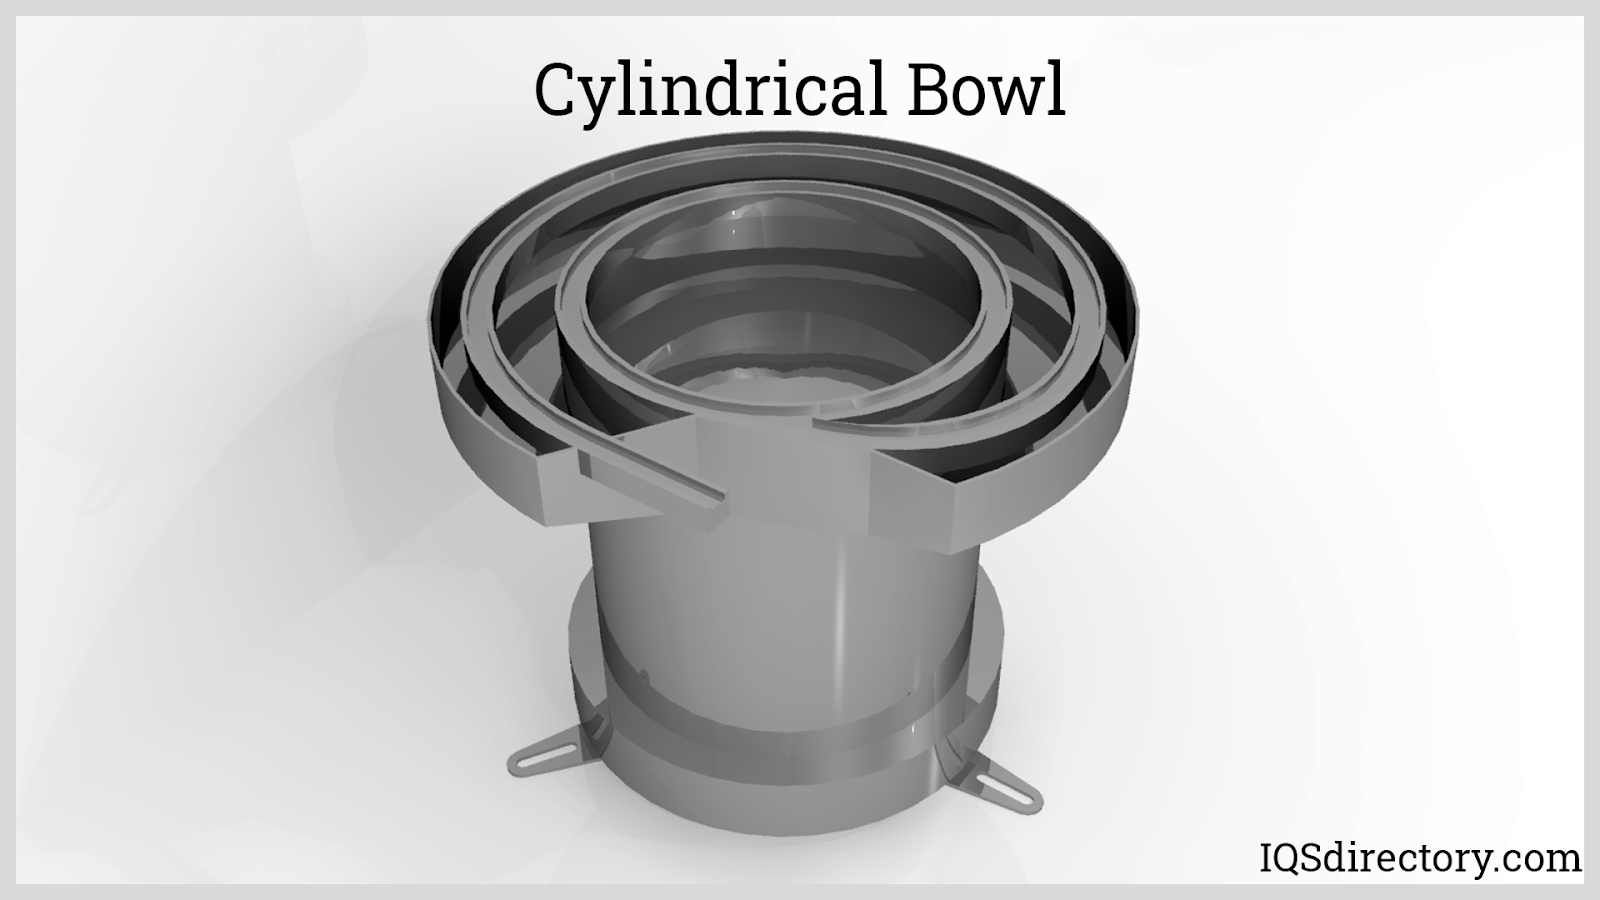 Cylindrical Bowl